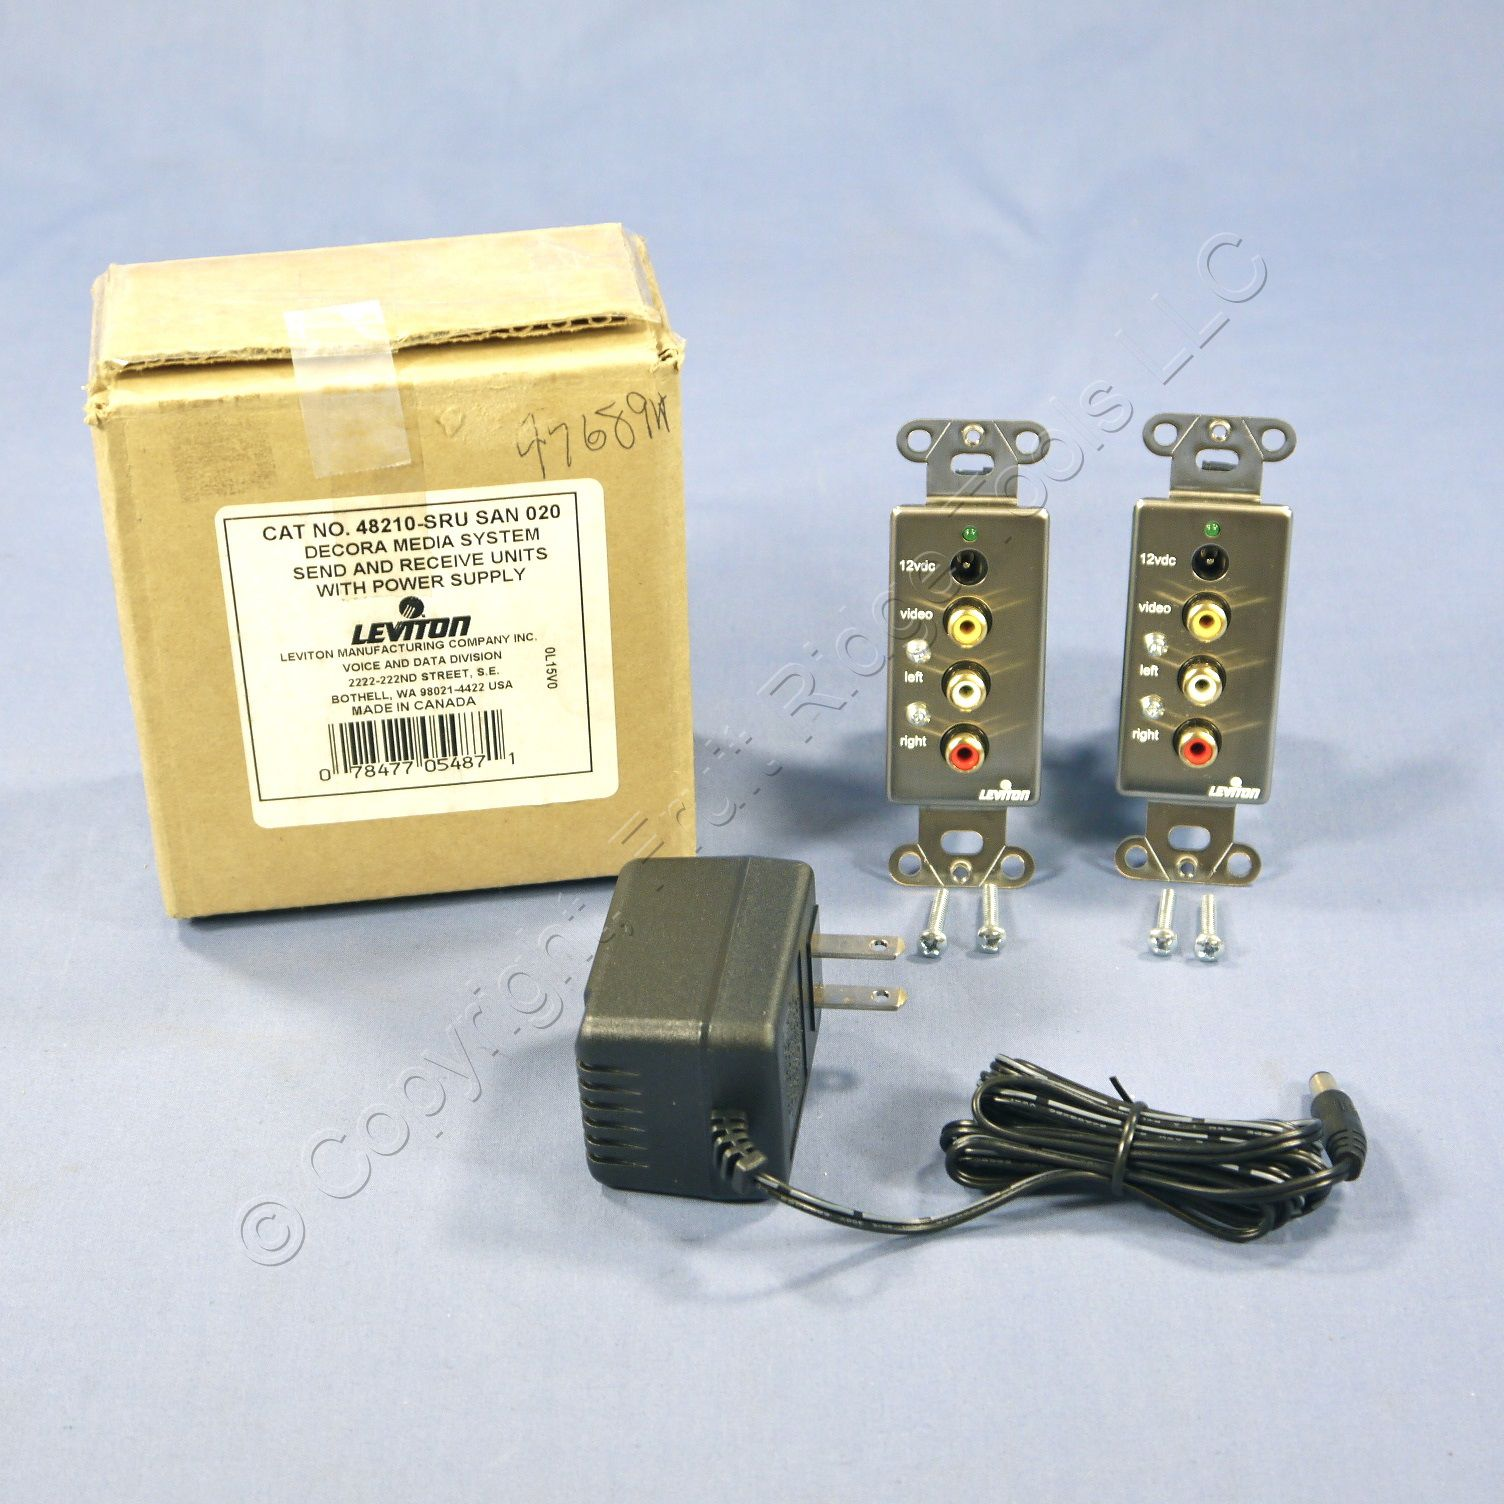 Buy Leviton Decora Media System Send & Receive Unit Cat 5 with Power ...